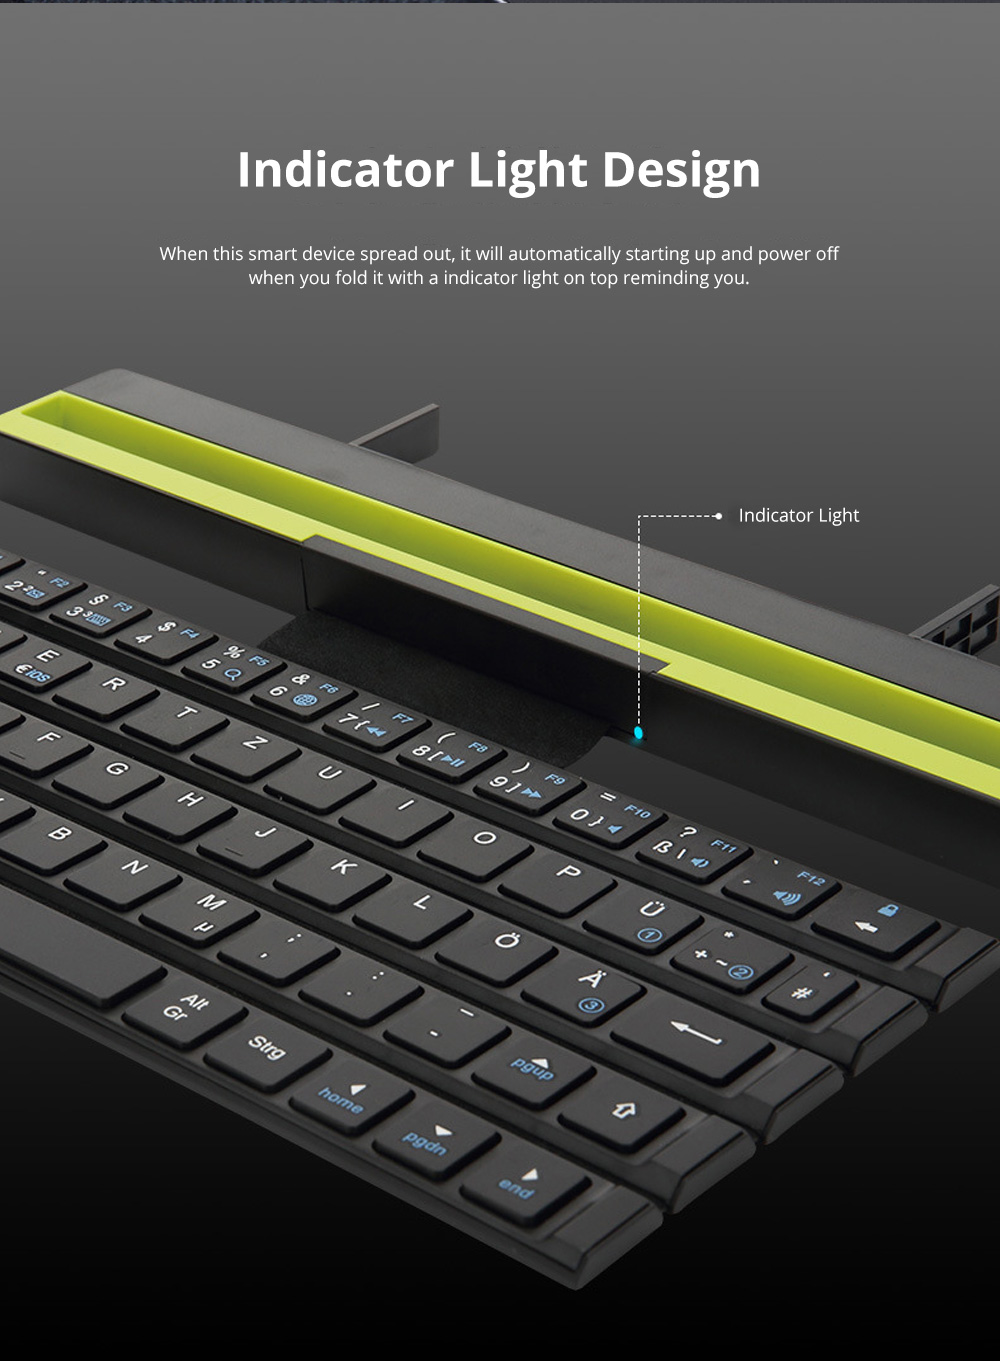 Rock Wireless Bluetooth iPad Keyboard for Both Phones and Tablet Computers Portable Mini-sized Scroll type Android IOS Keyboard for Multiple Devices 5